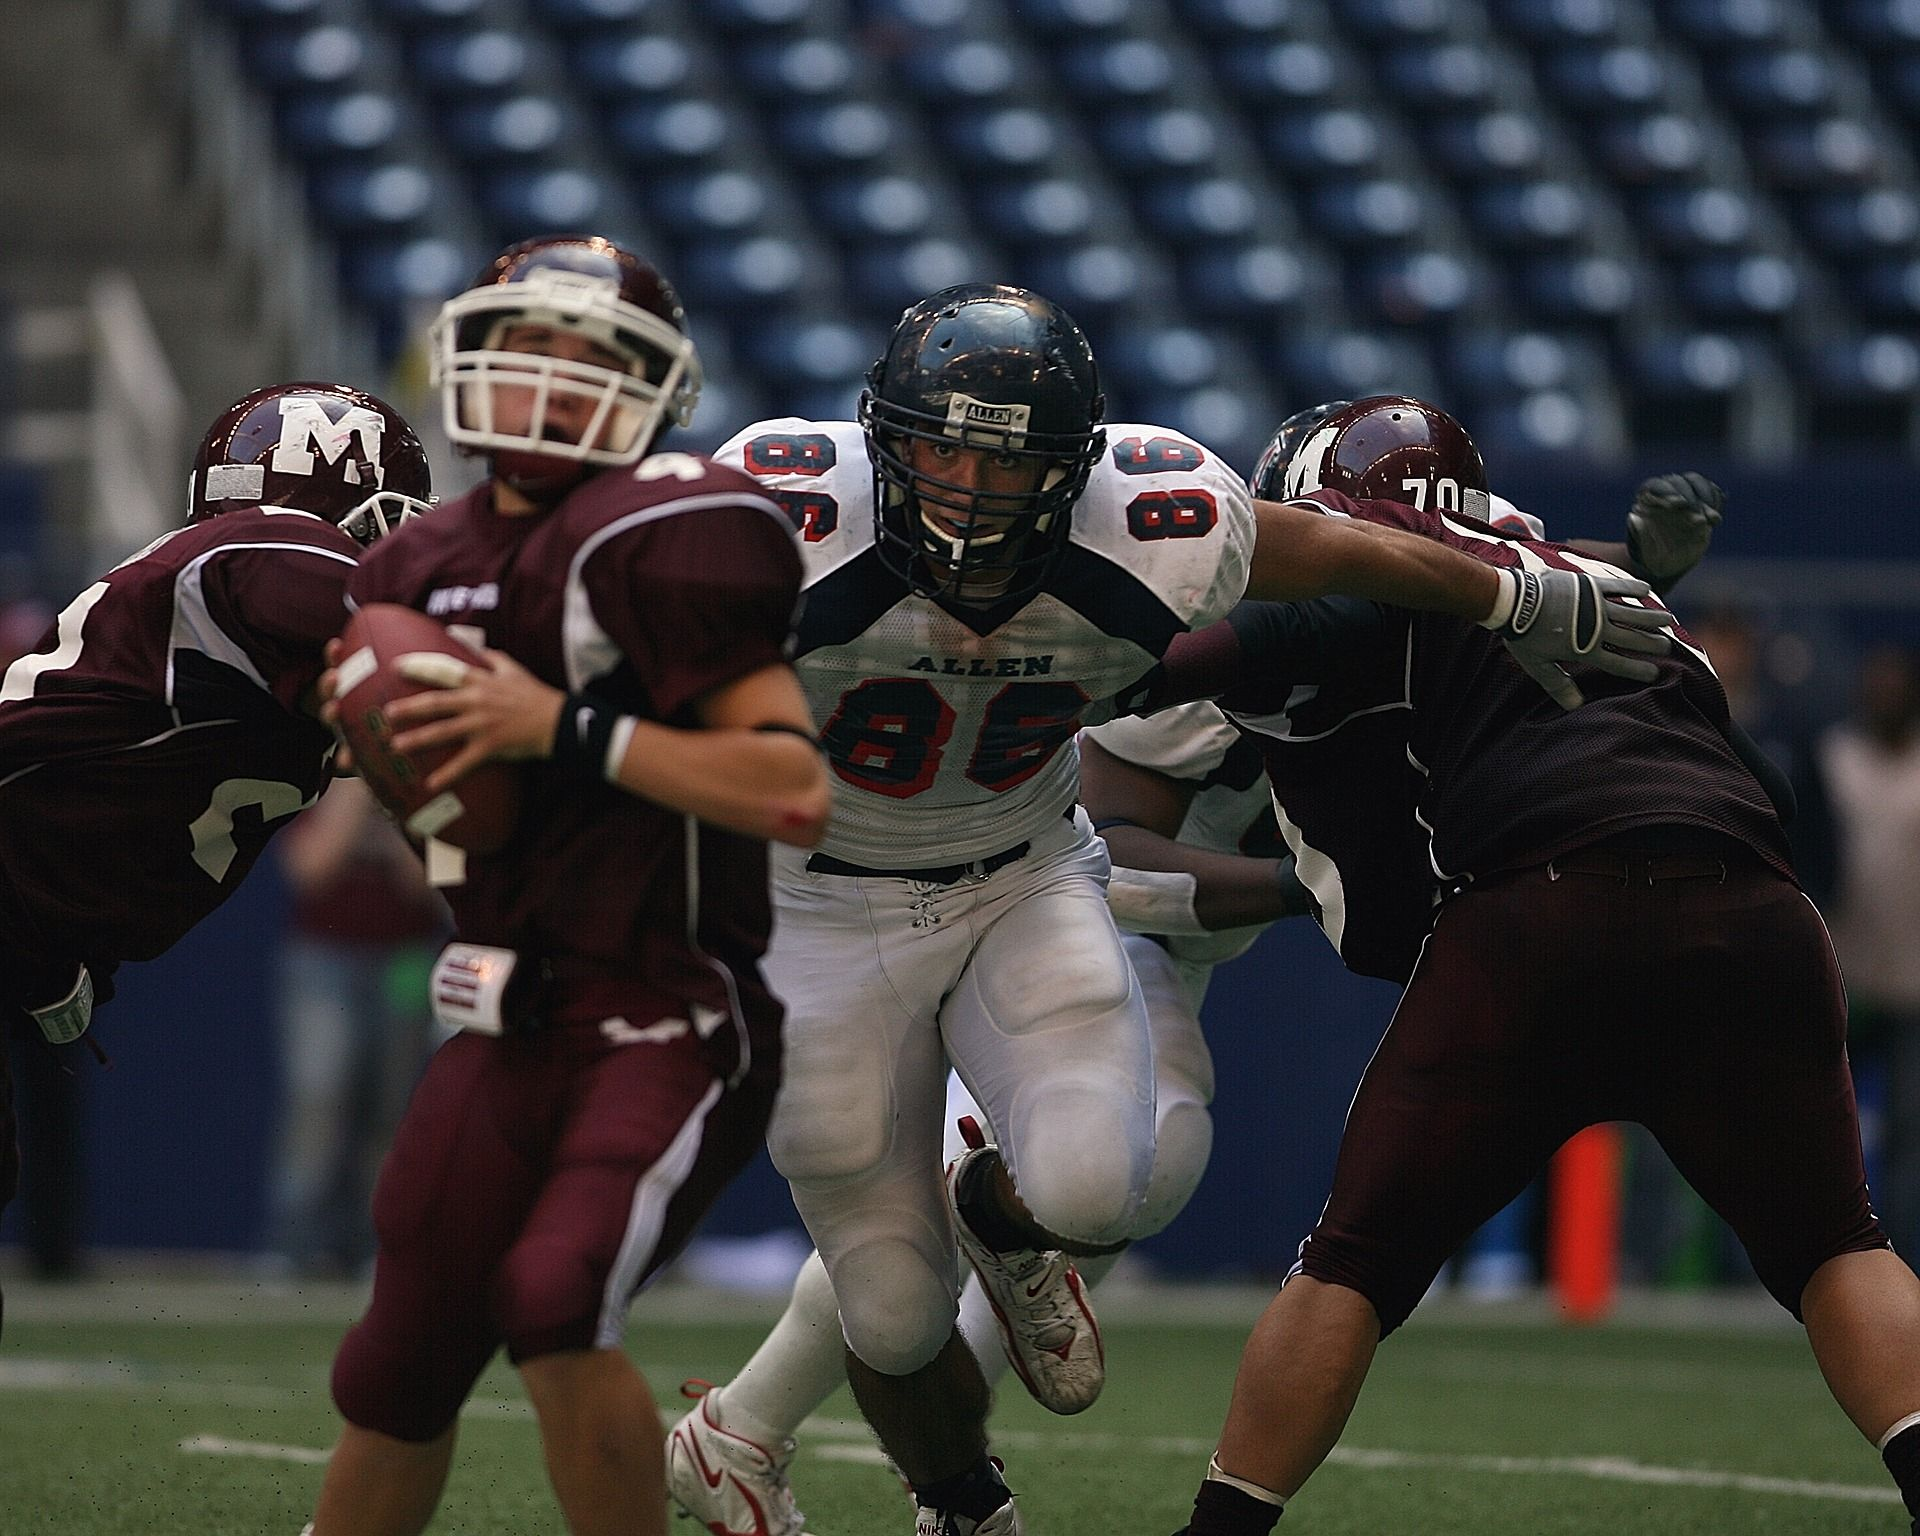 How ArbiterSports Can Help Your High School Athletic Department